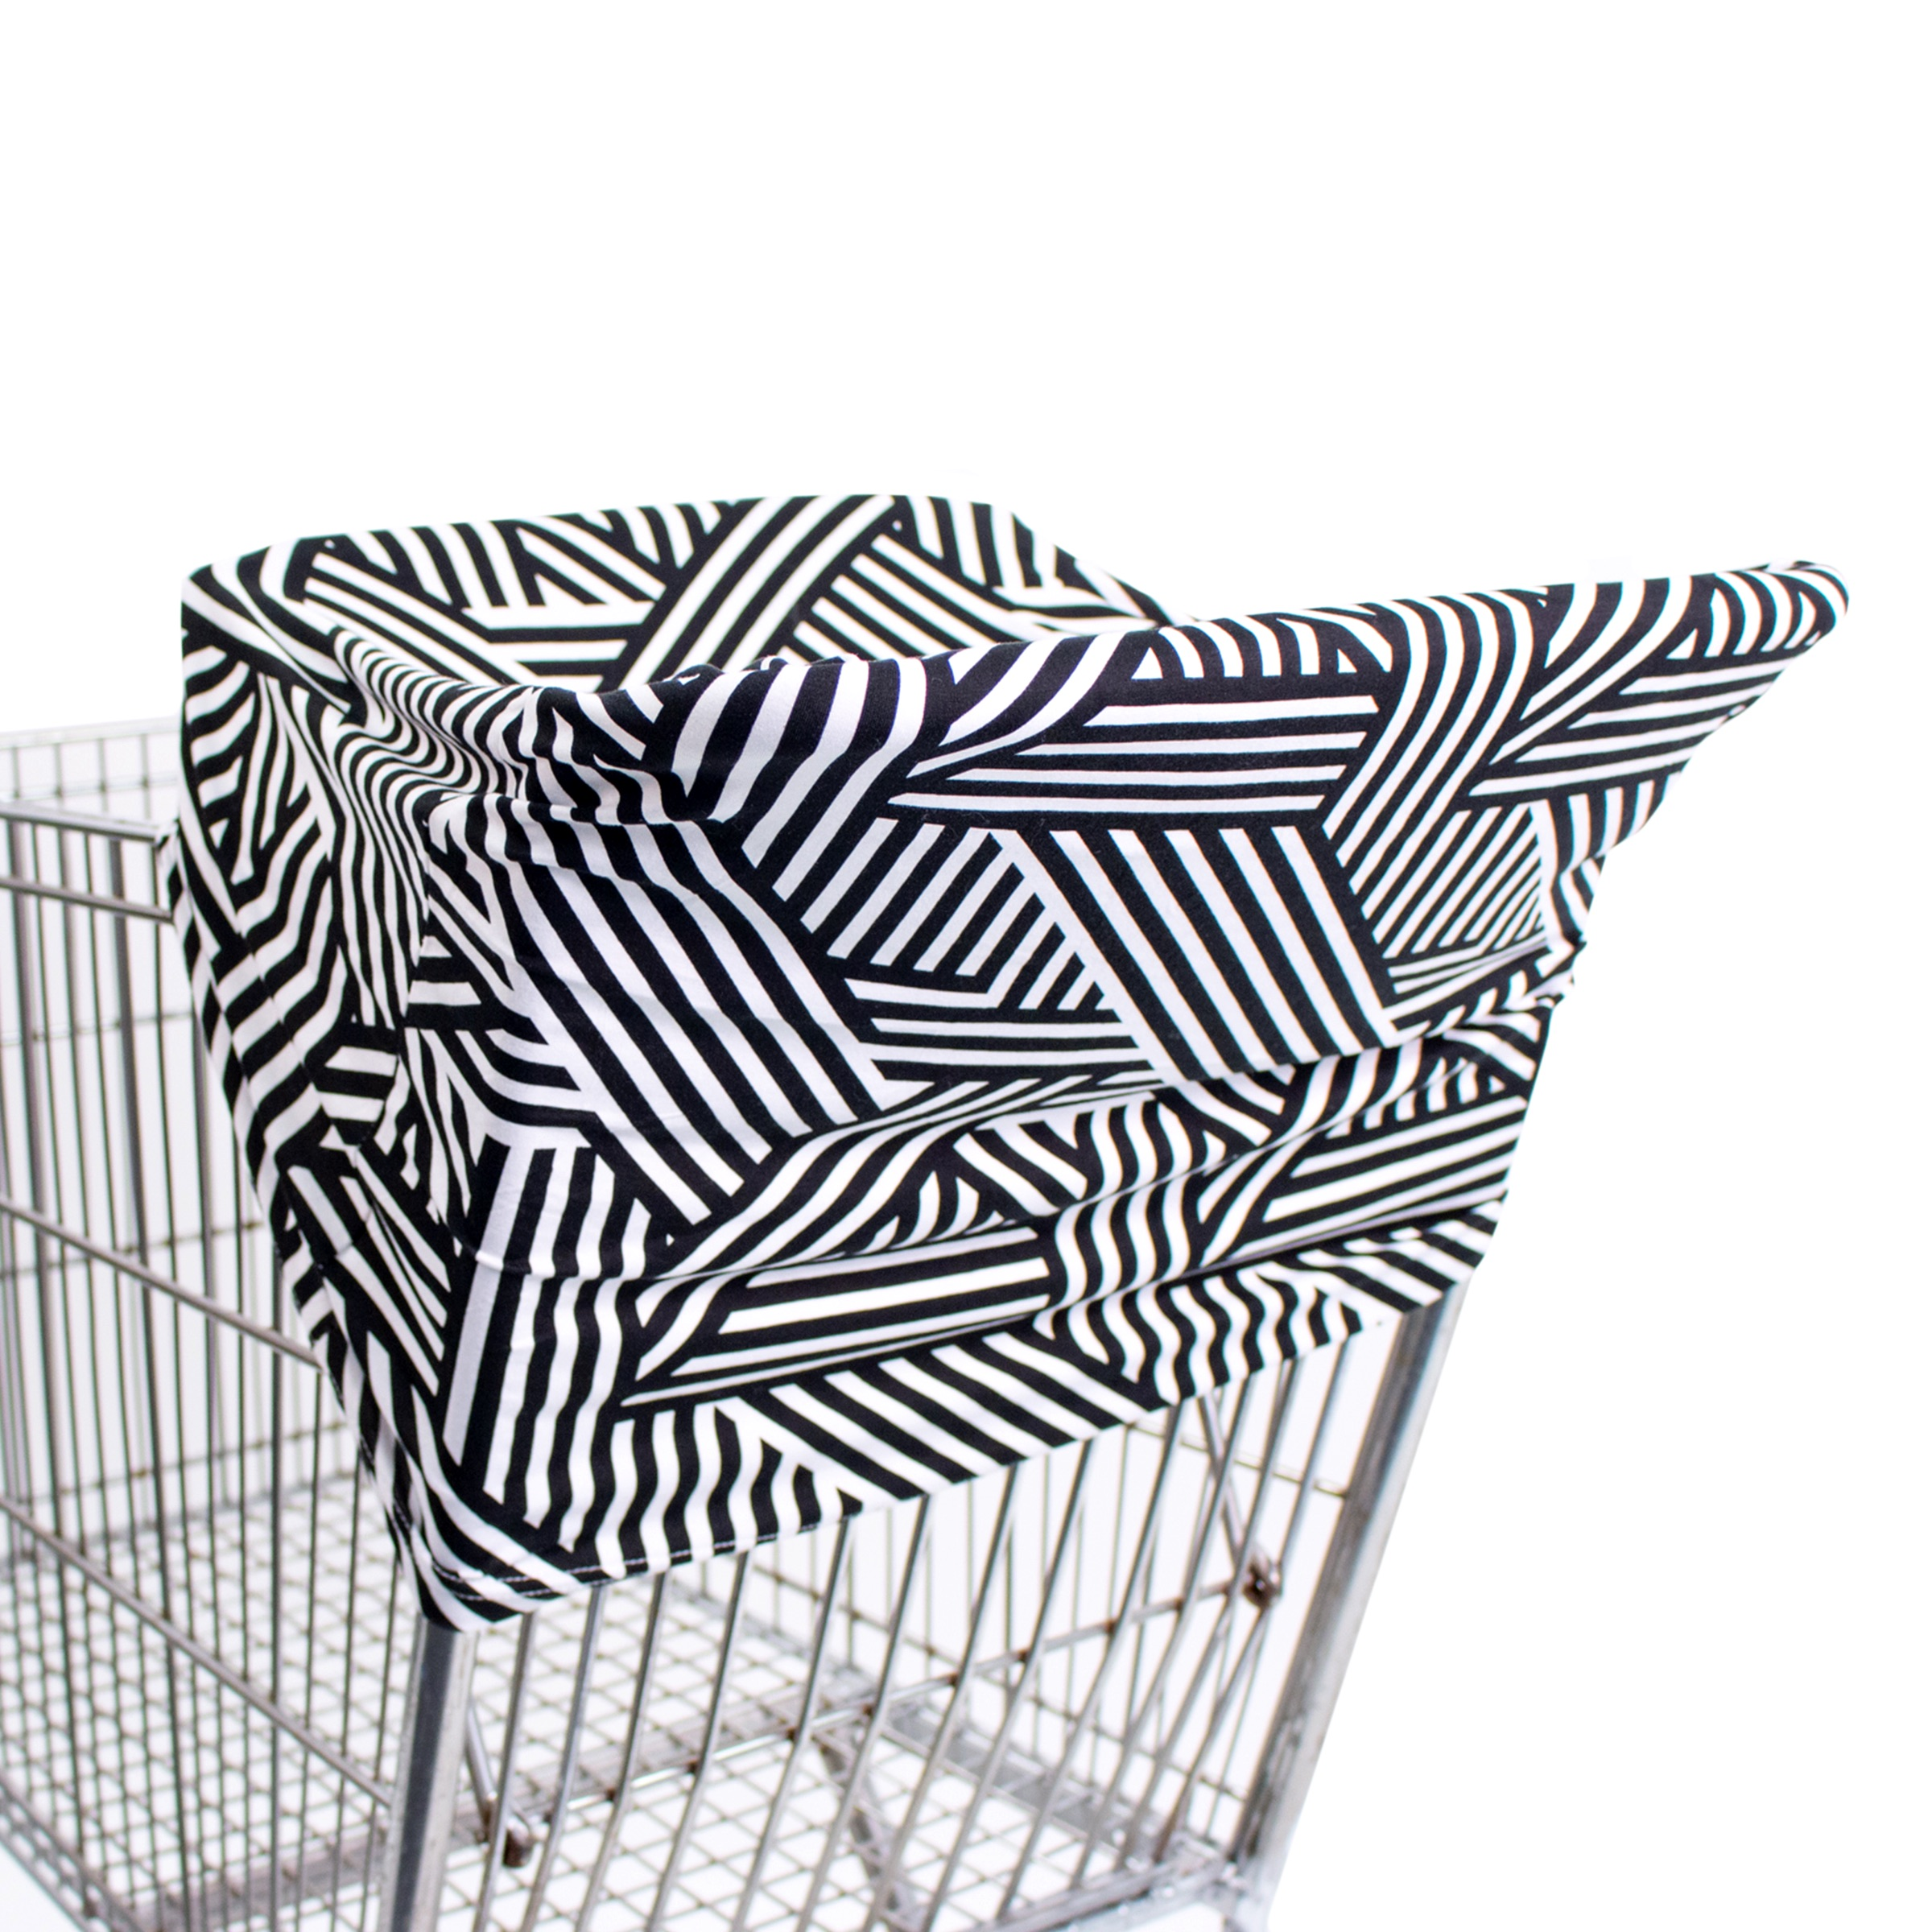 Bebe au lait 5 in 1 cover Knightsbridge shopping trolley cover